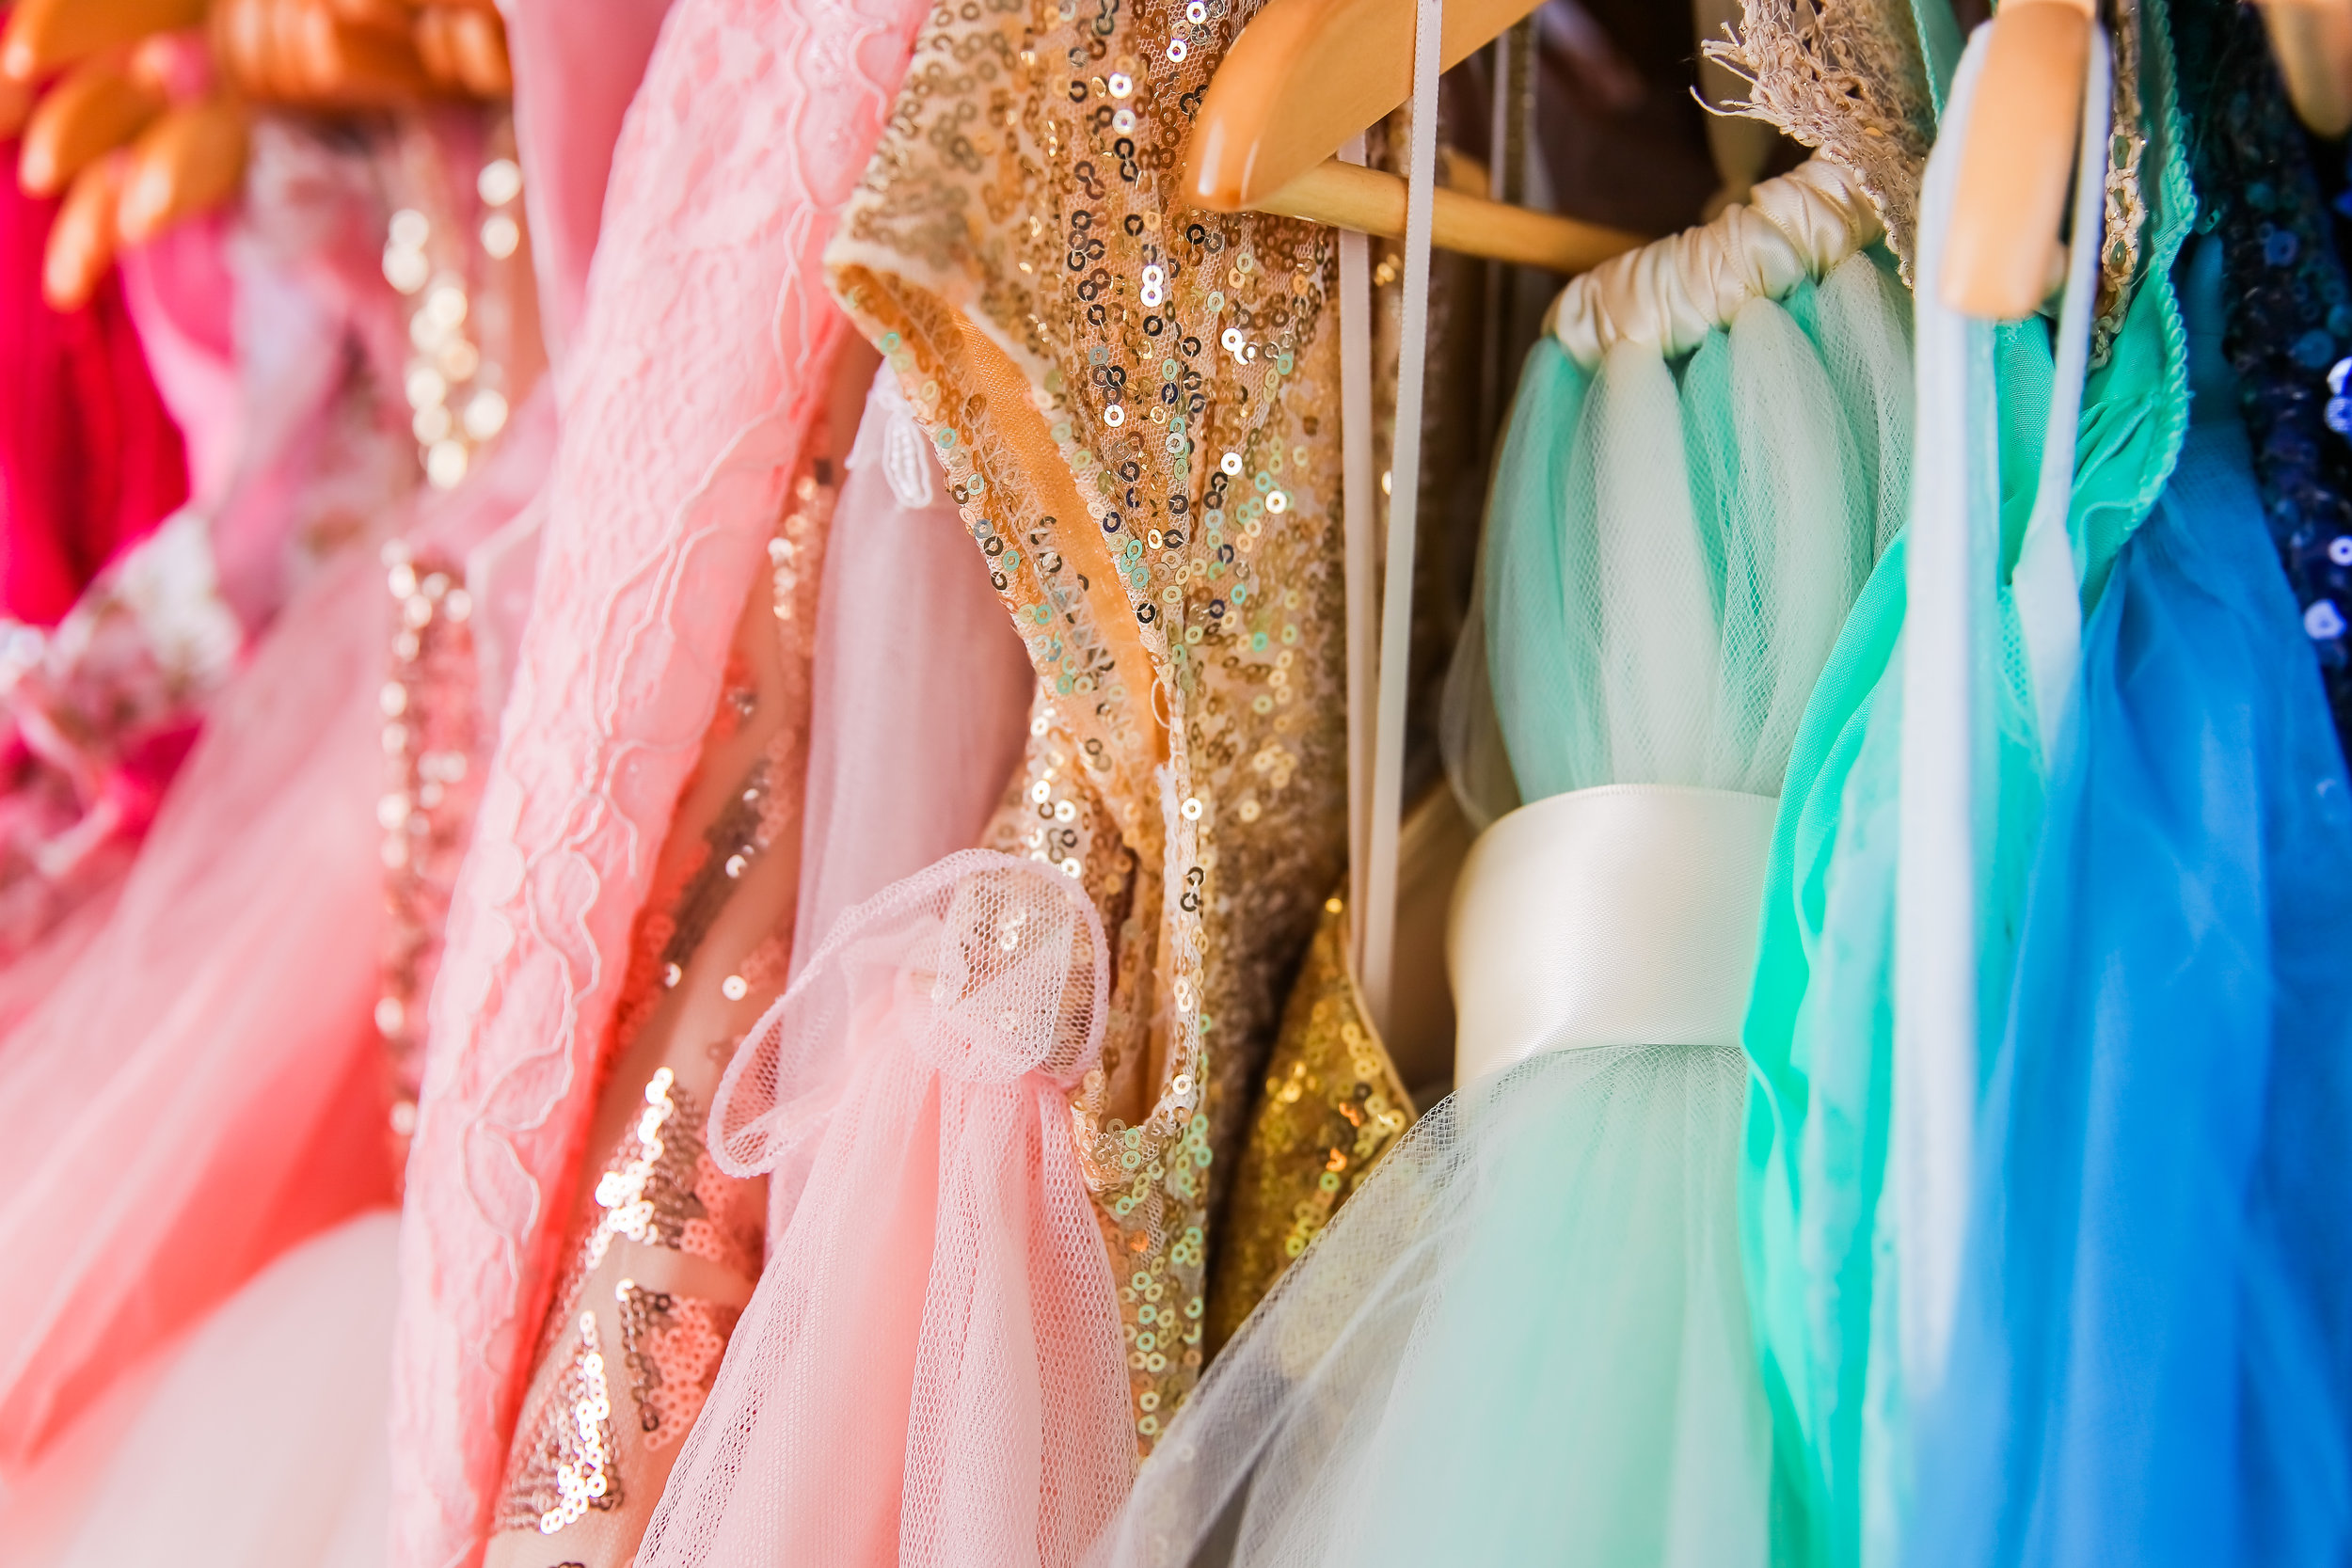 We have hundreds of couture & stunning dresses for all our Clients to use at their gorgeous sessions!